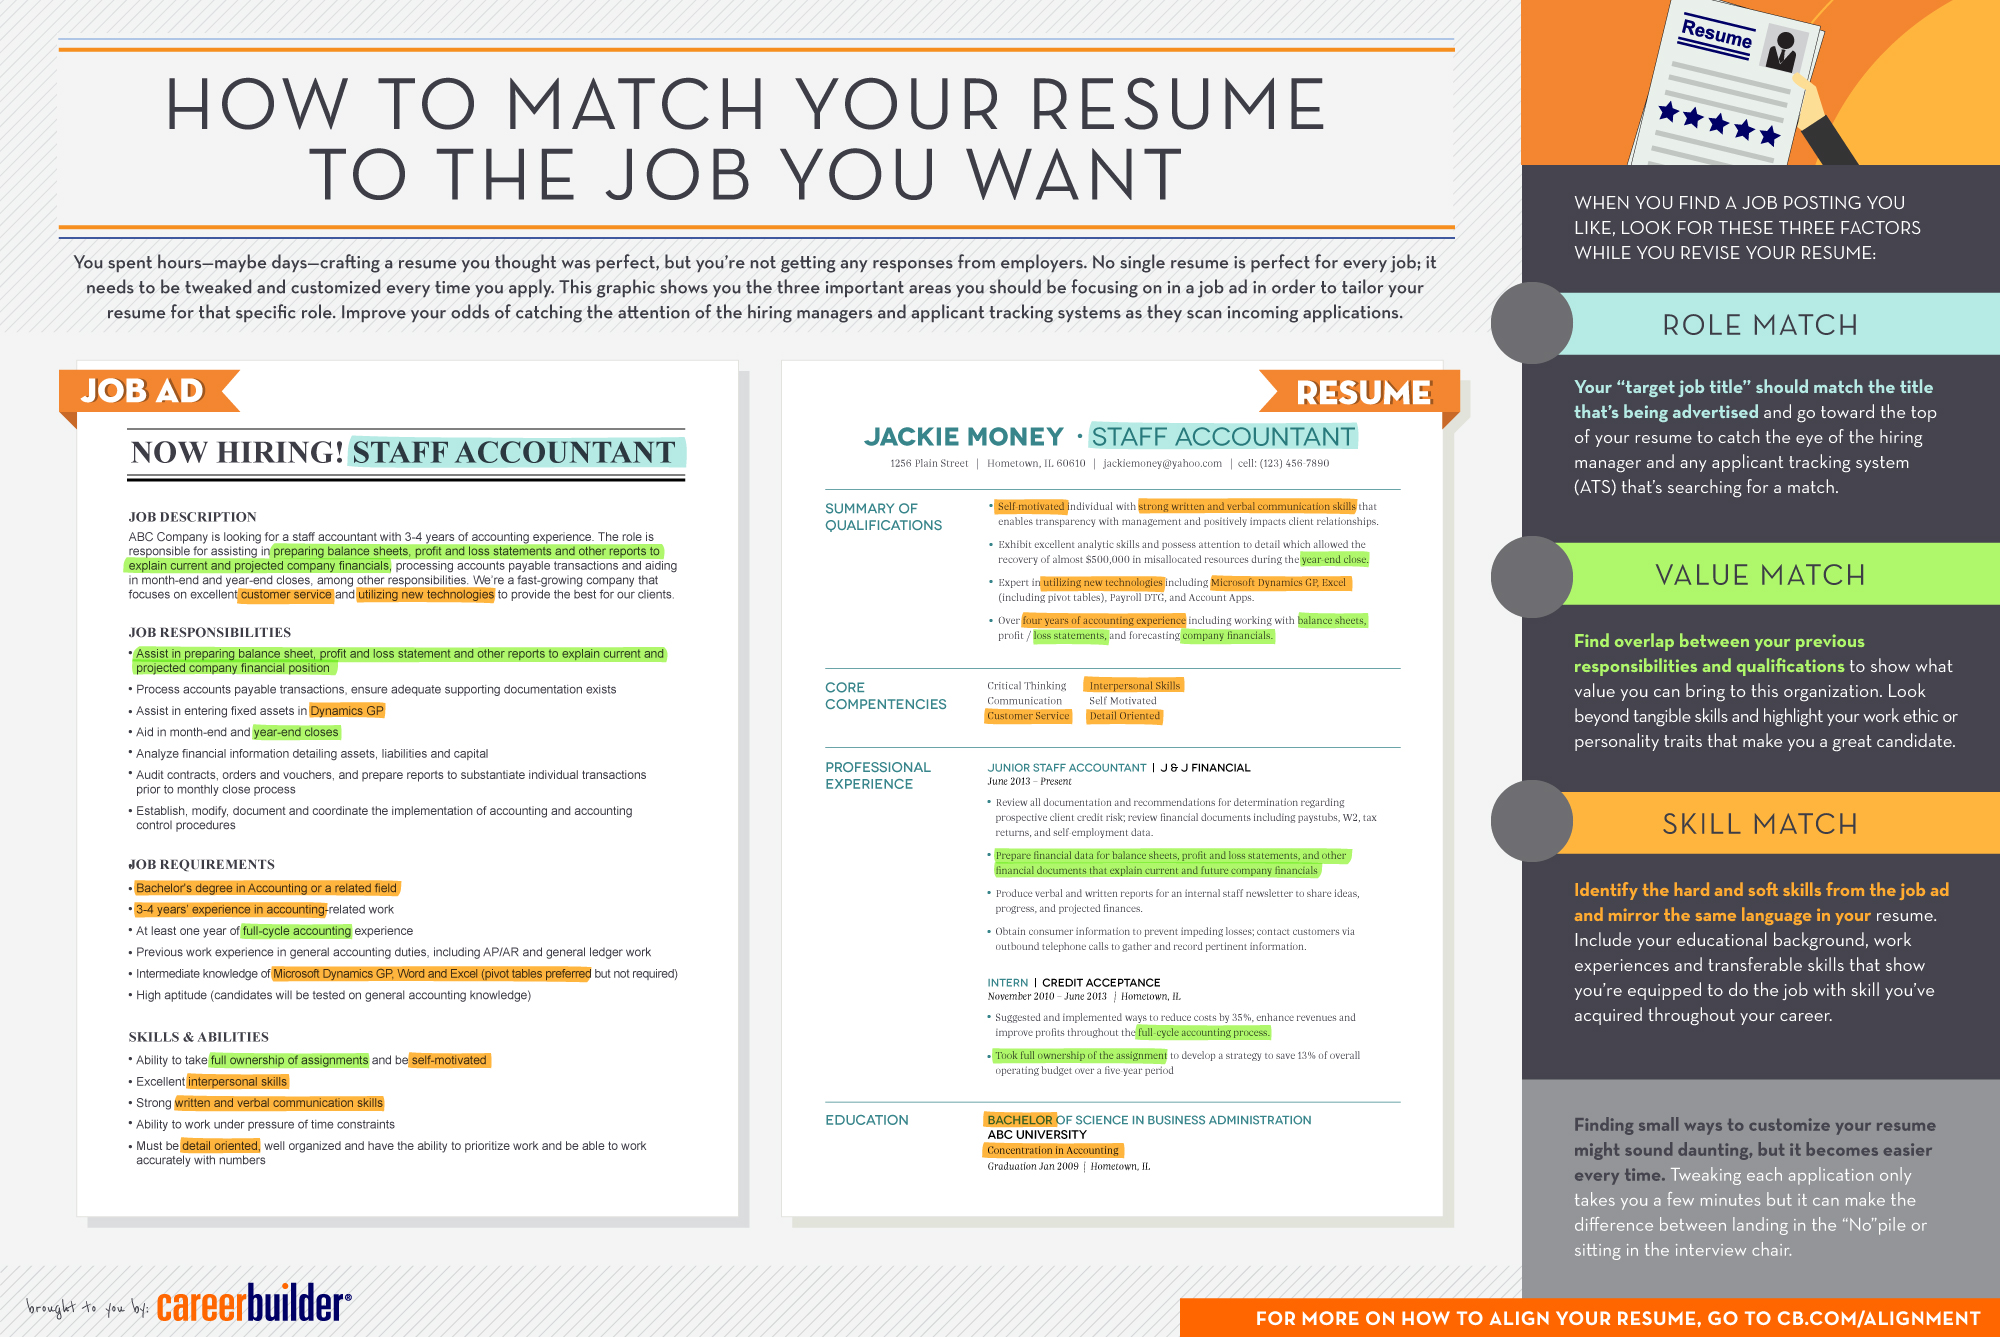 INFOGRAPHIC: Matching your resume to the job you want | CareerBuilder